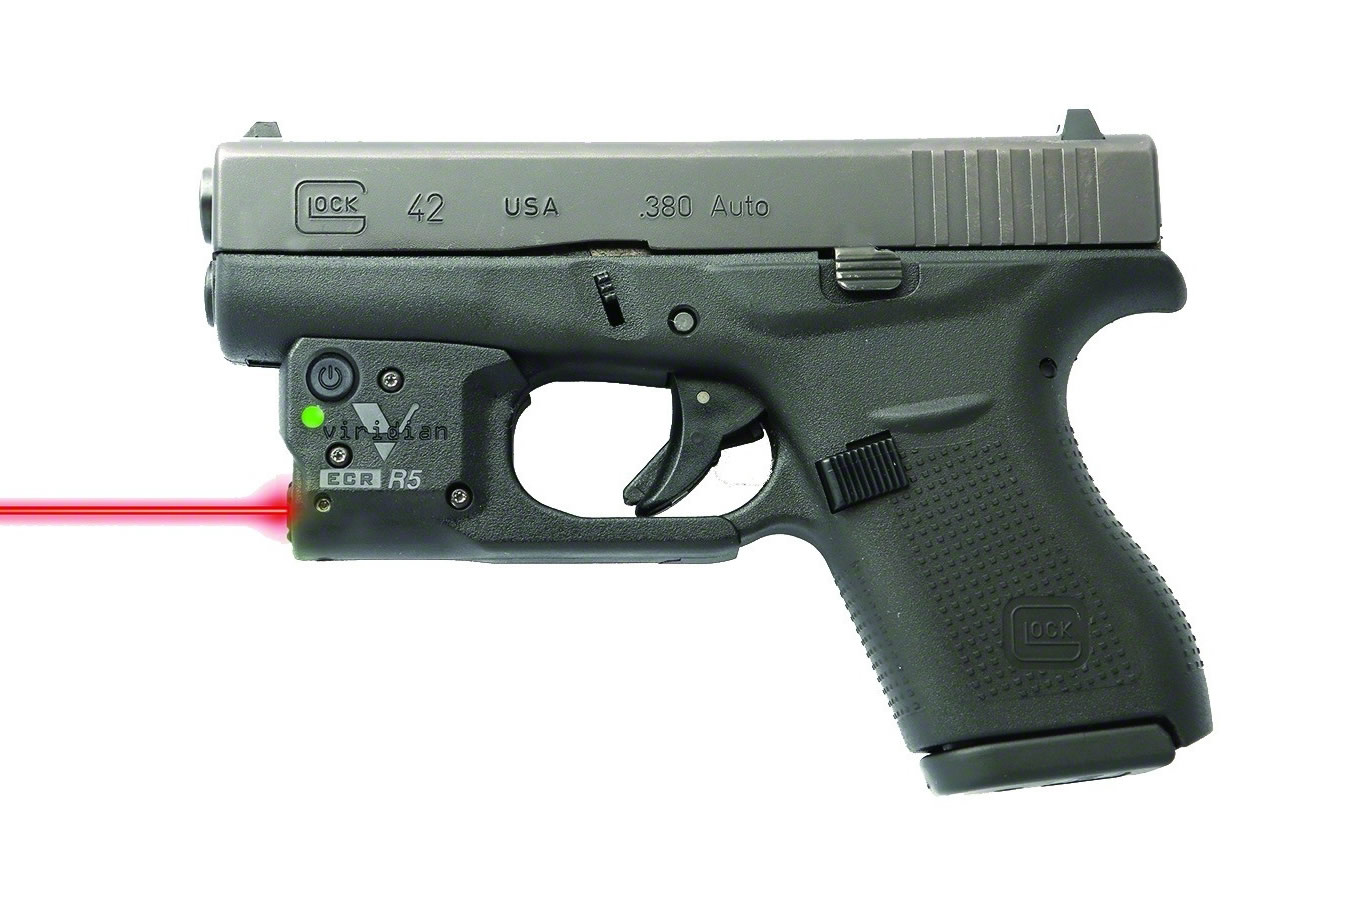 REACTOR R5 RED LASER FOR GLOCK 42